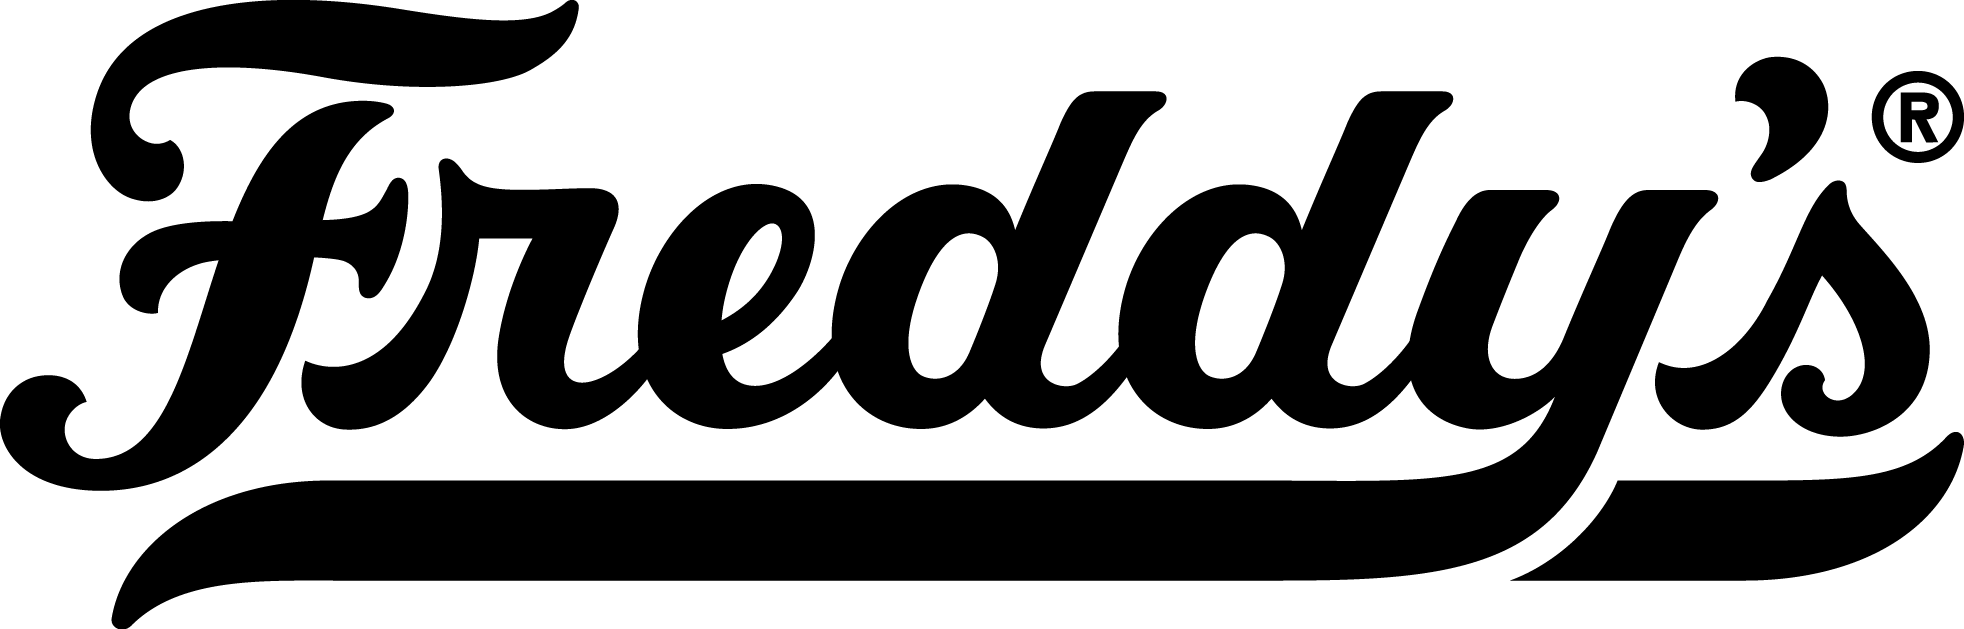 Freddy's Secondary Logo Black